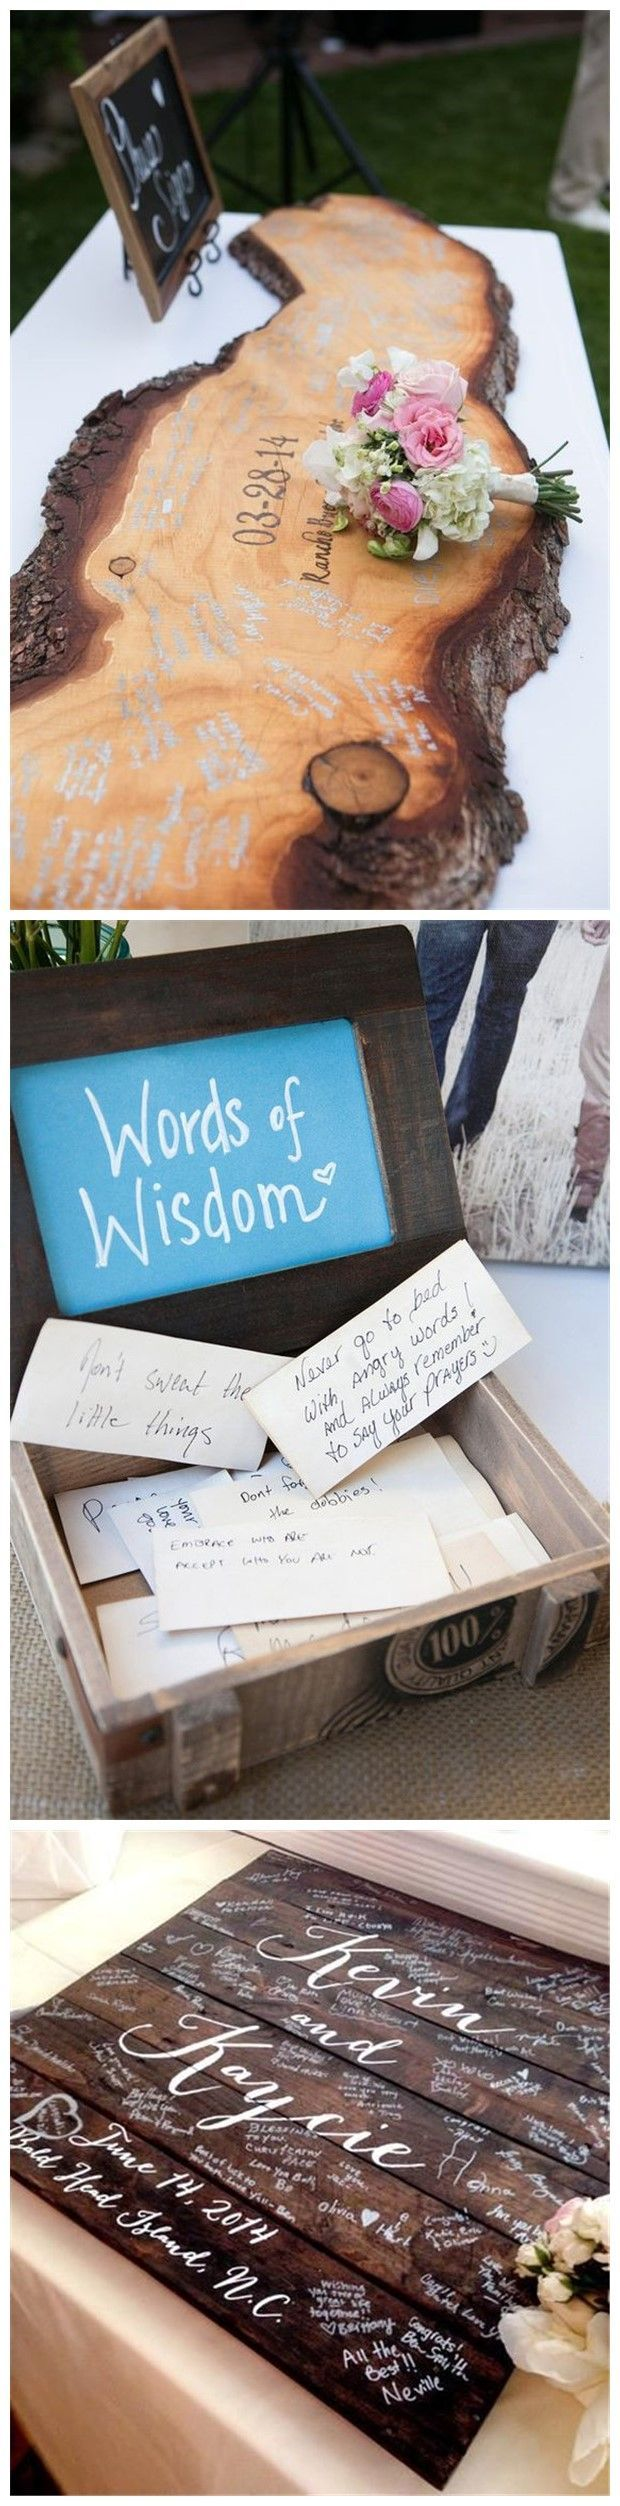 Wedding Decorations » 22 of Our Favorite Unique Wedding Guest Book Ideas » ❤️ More: http://www.weddinginclude.com/2017/05/unique-wedding-guest-book-ideas/